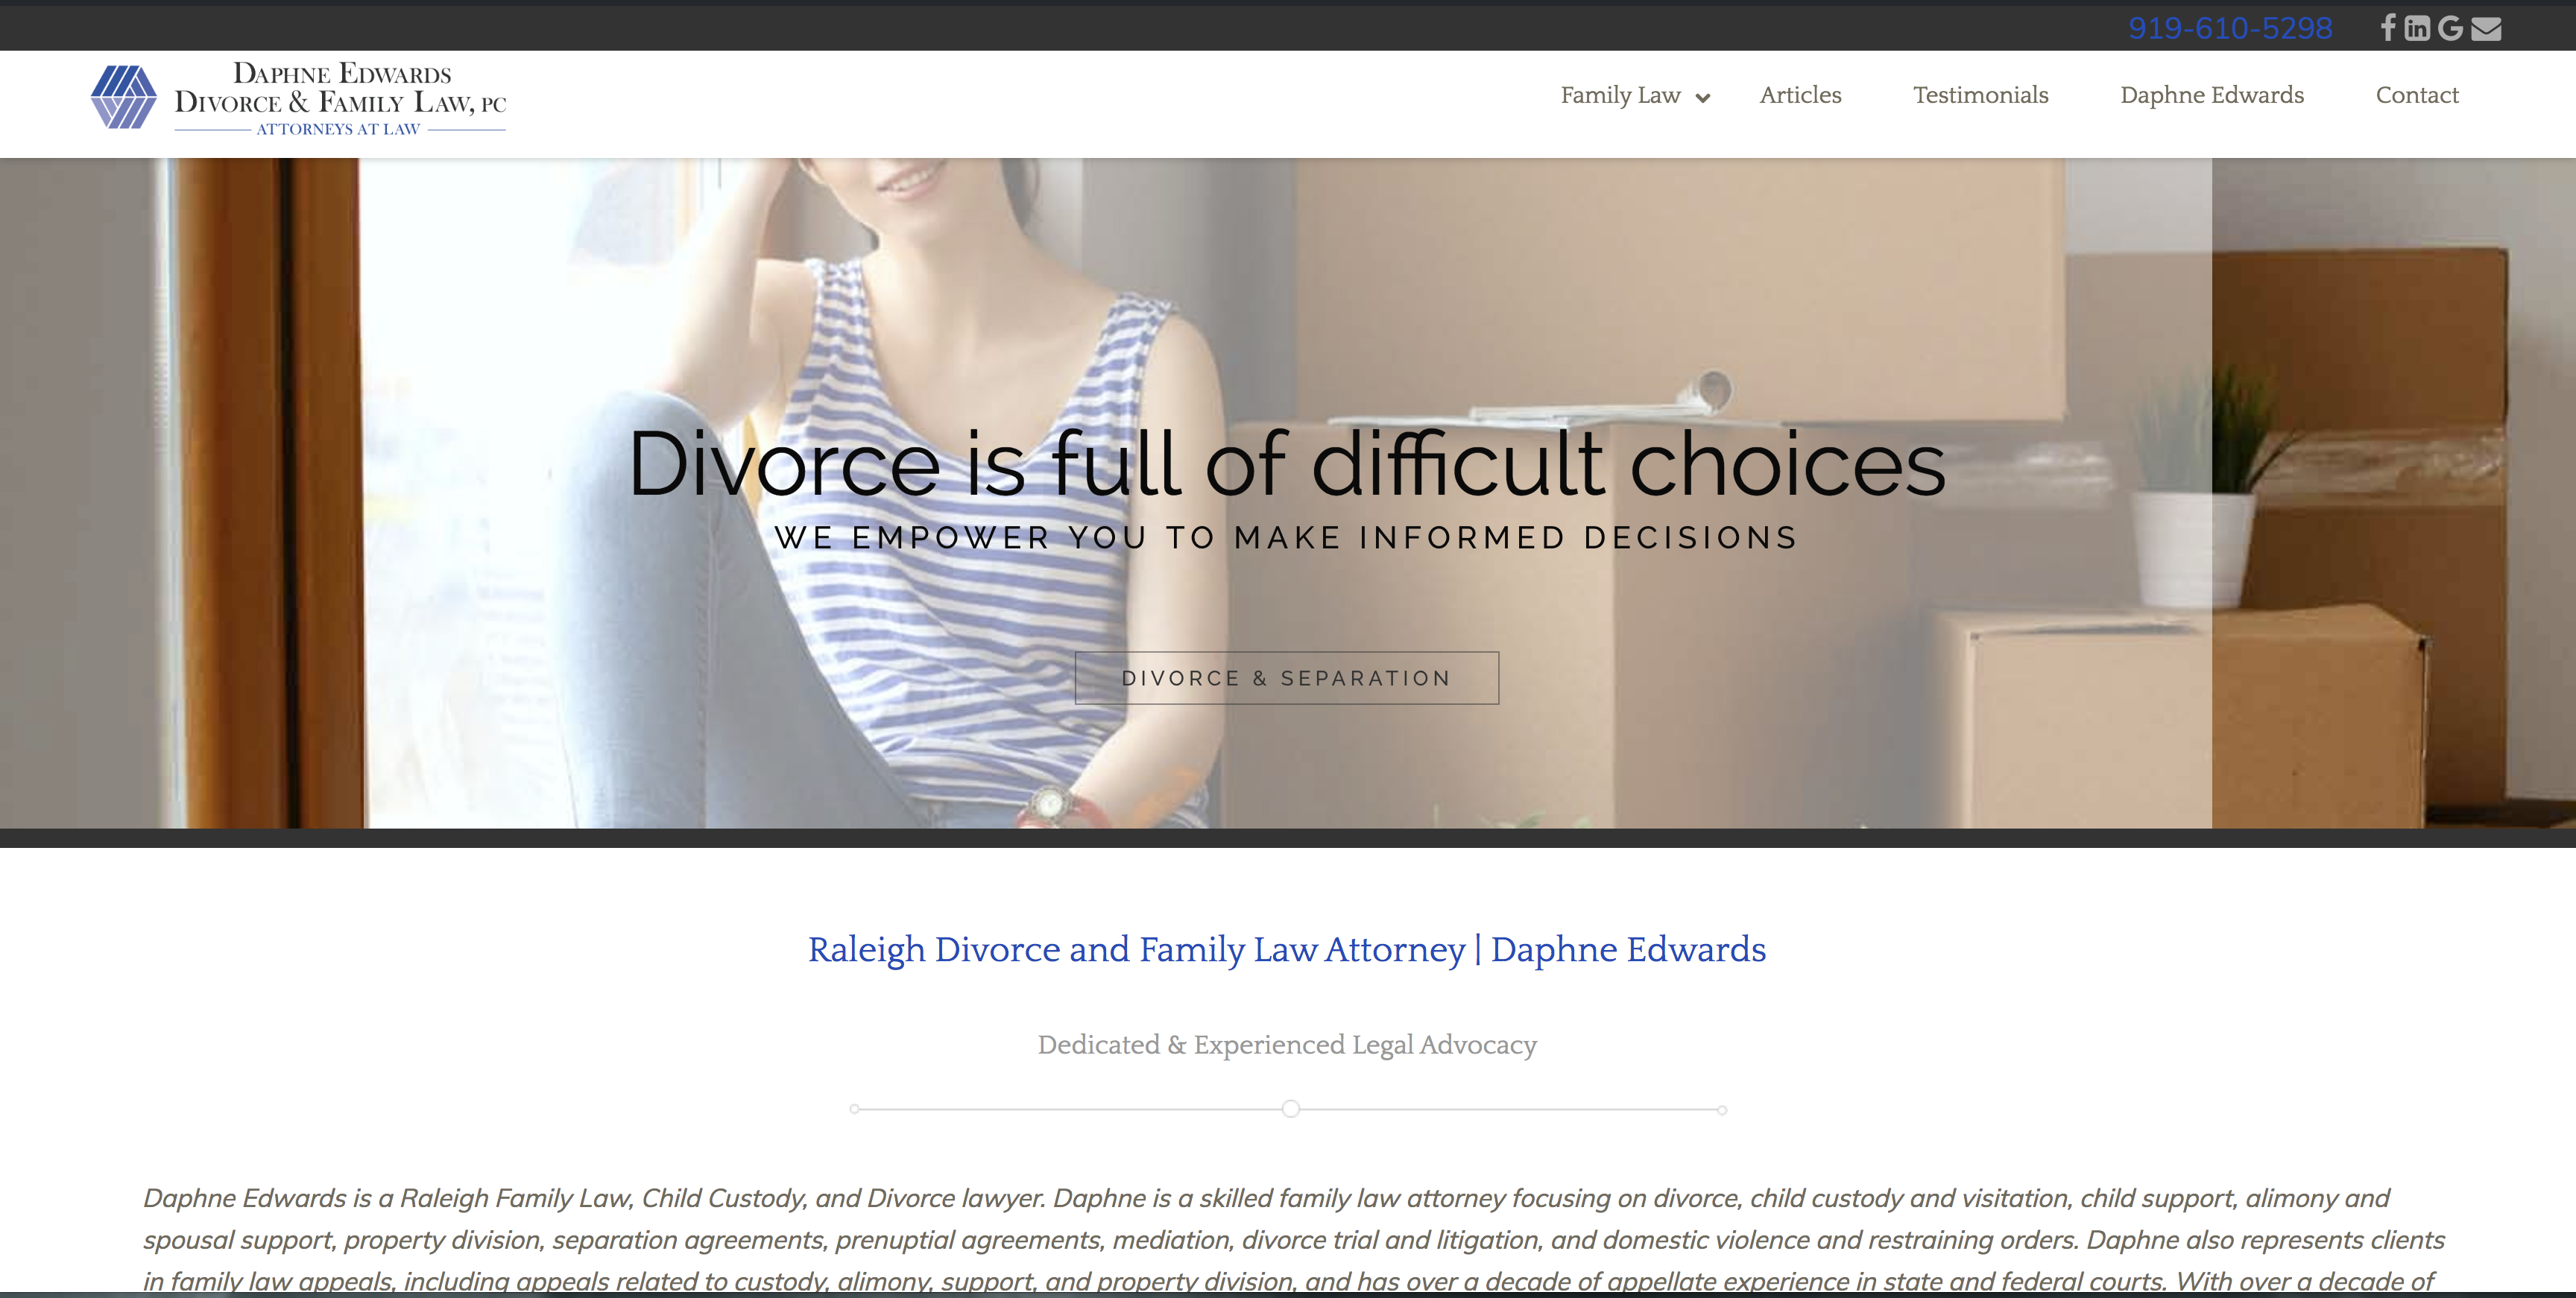 Daphne Edwards Divorce and Family Law Attorney